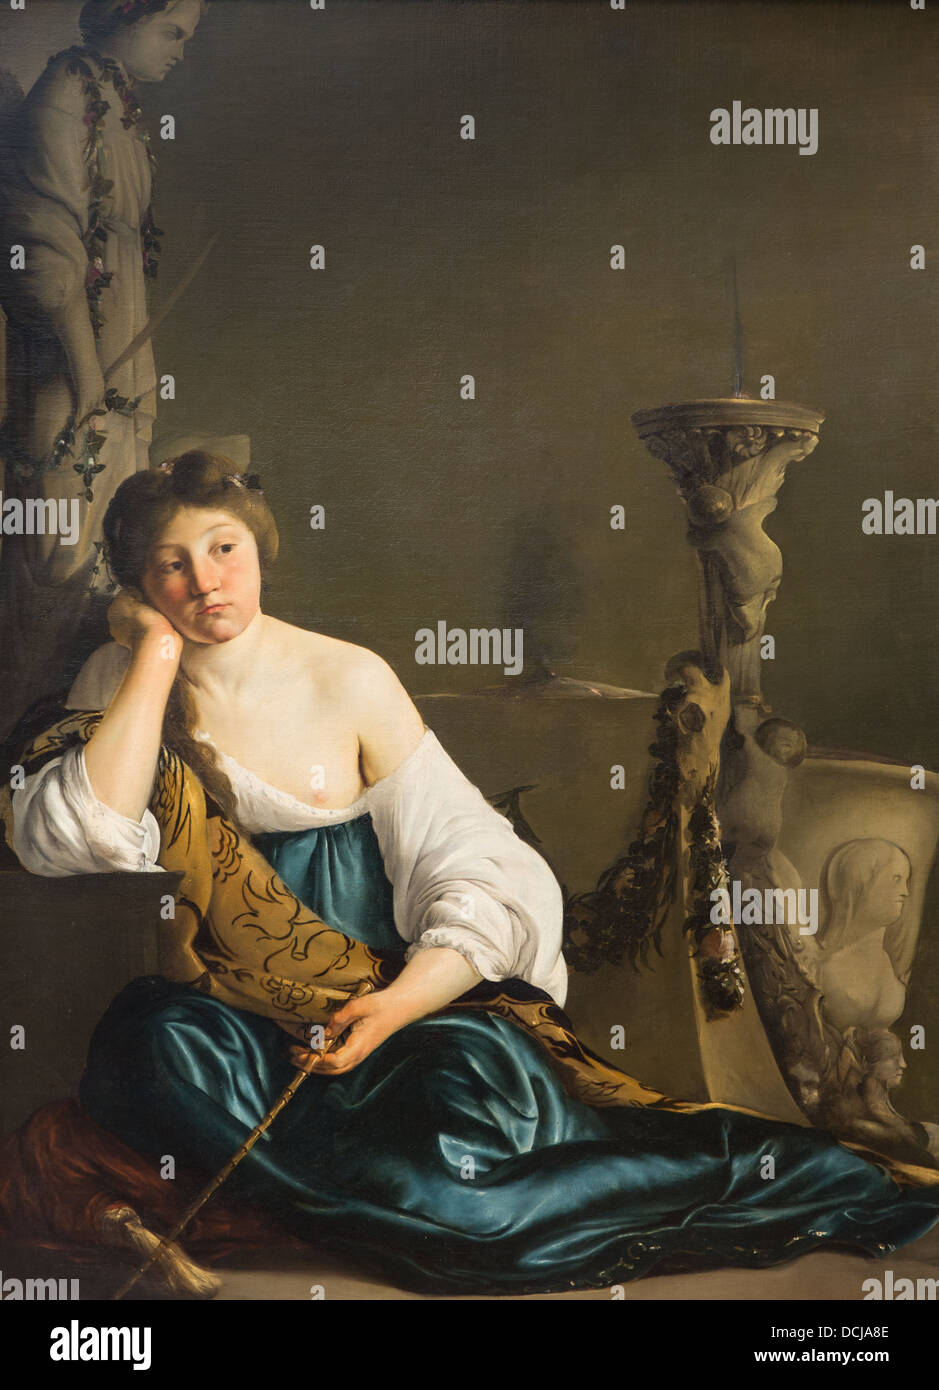 17th century  -  The Disillusioned Medea ('The Enchantress') - Paulus Bor (1640) Oil on canvas - Stock Image